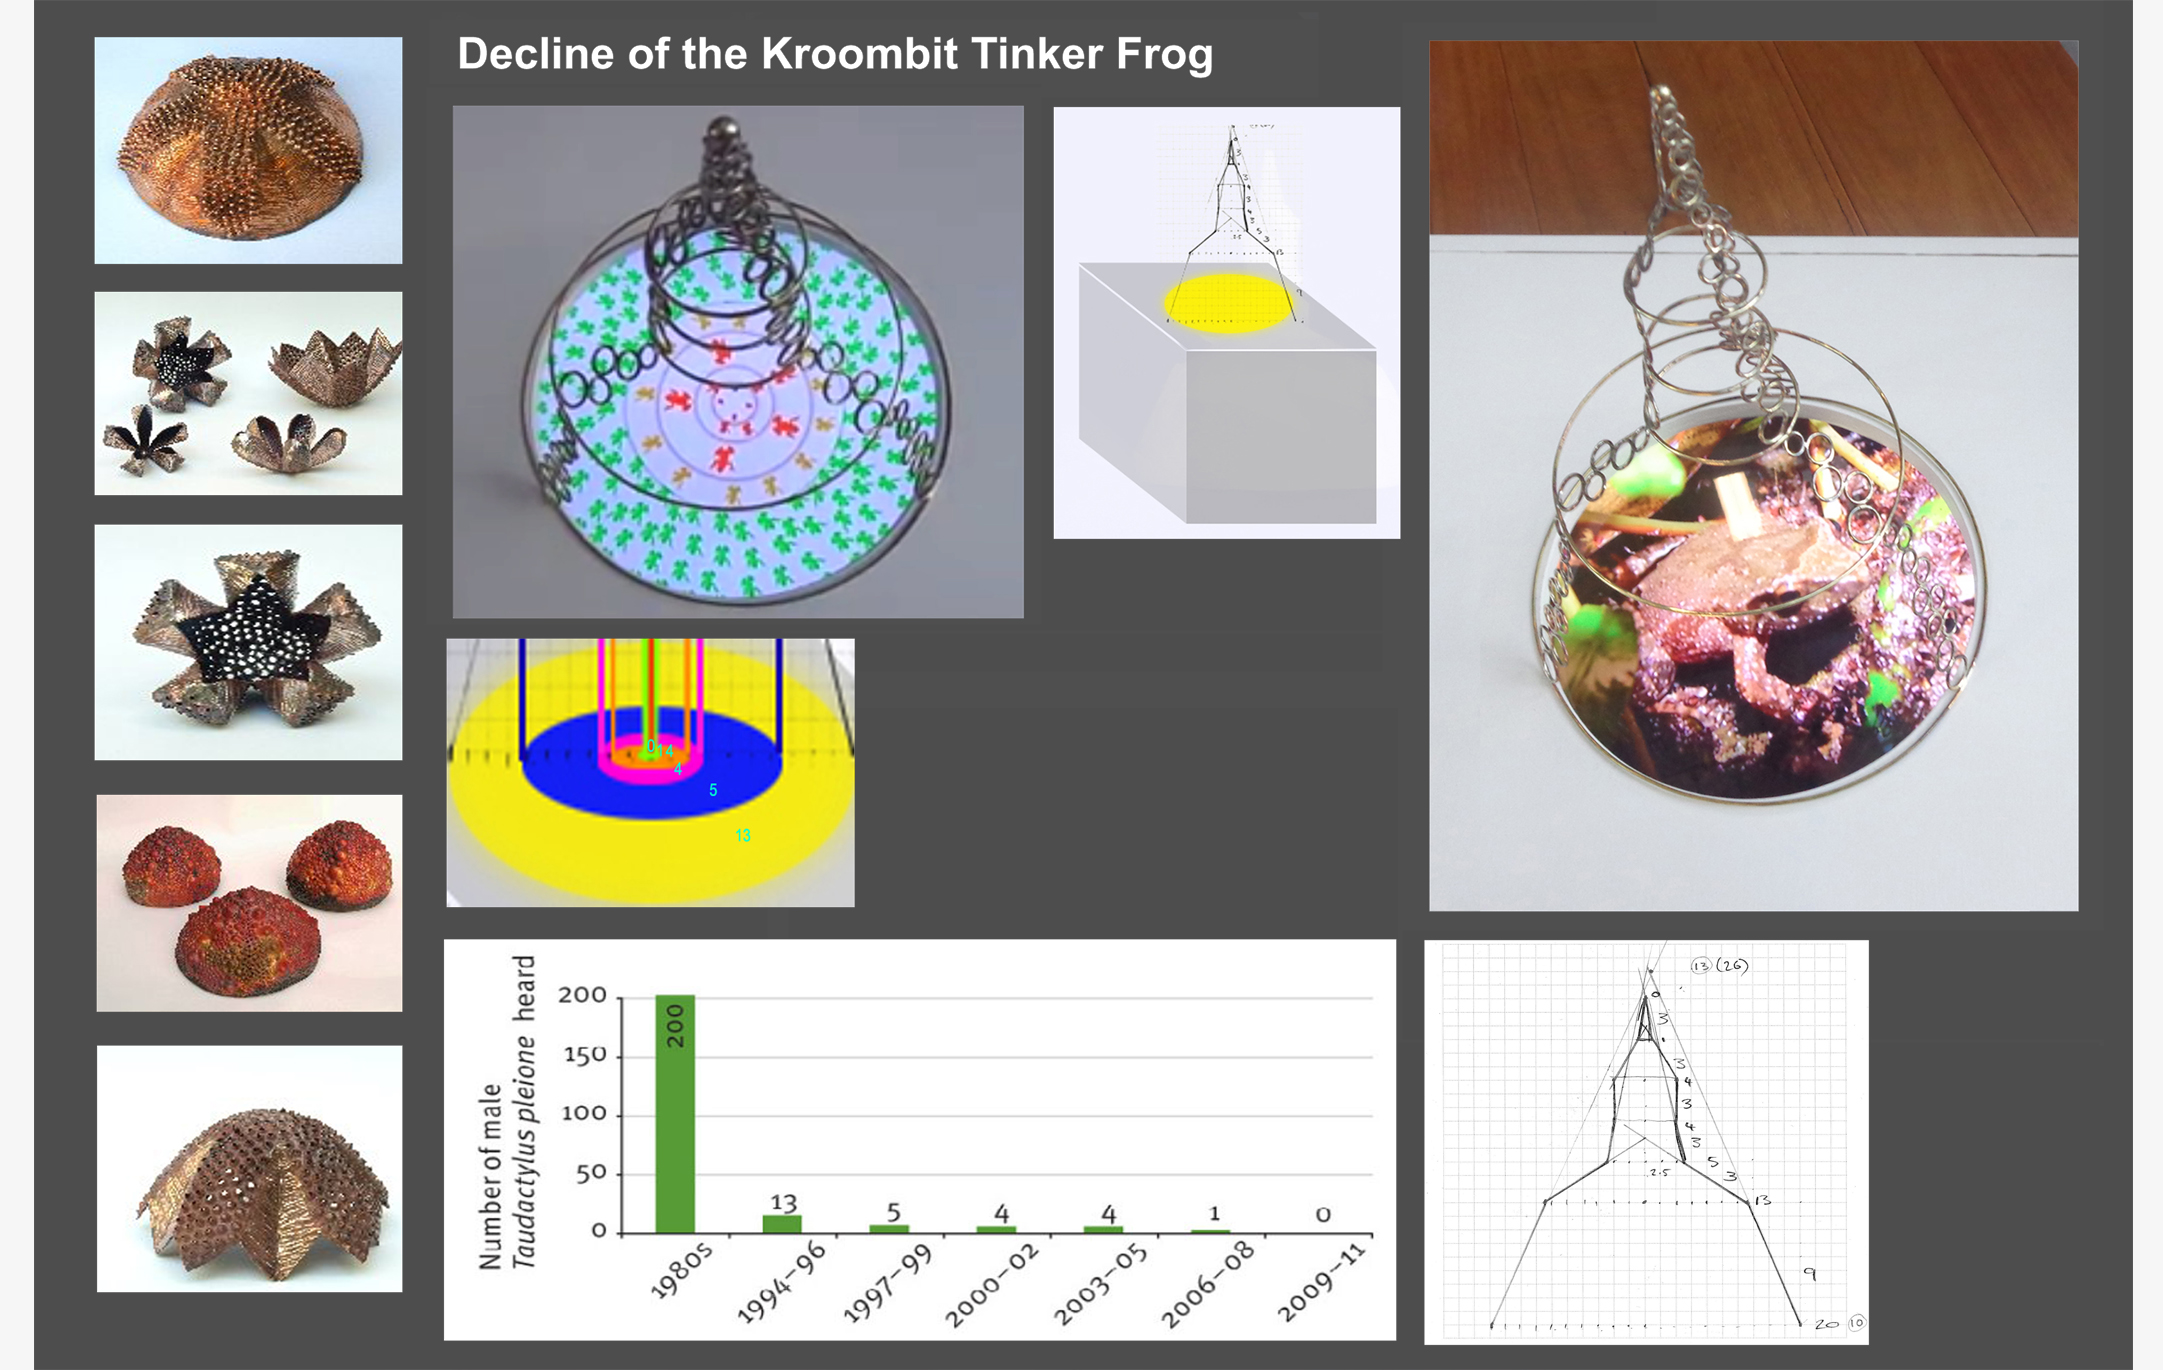 Decline of the Kroombit Tinker Frog